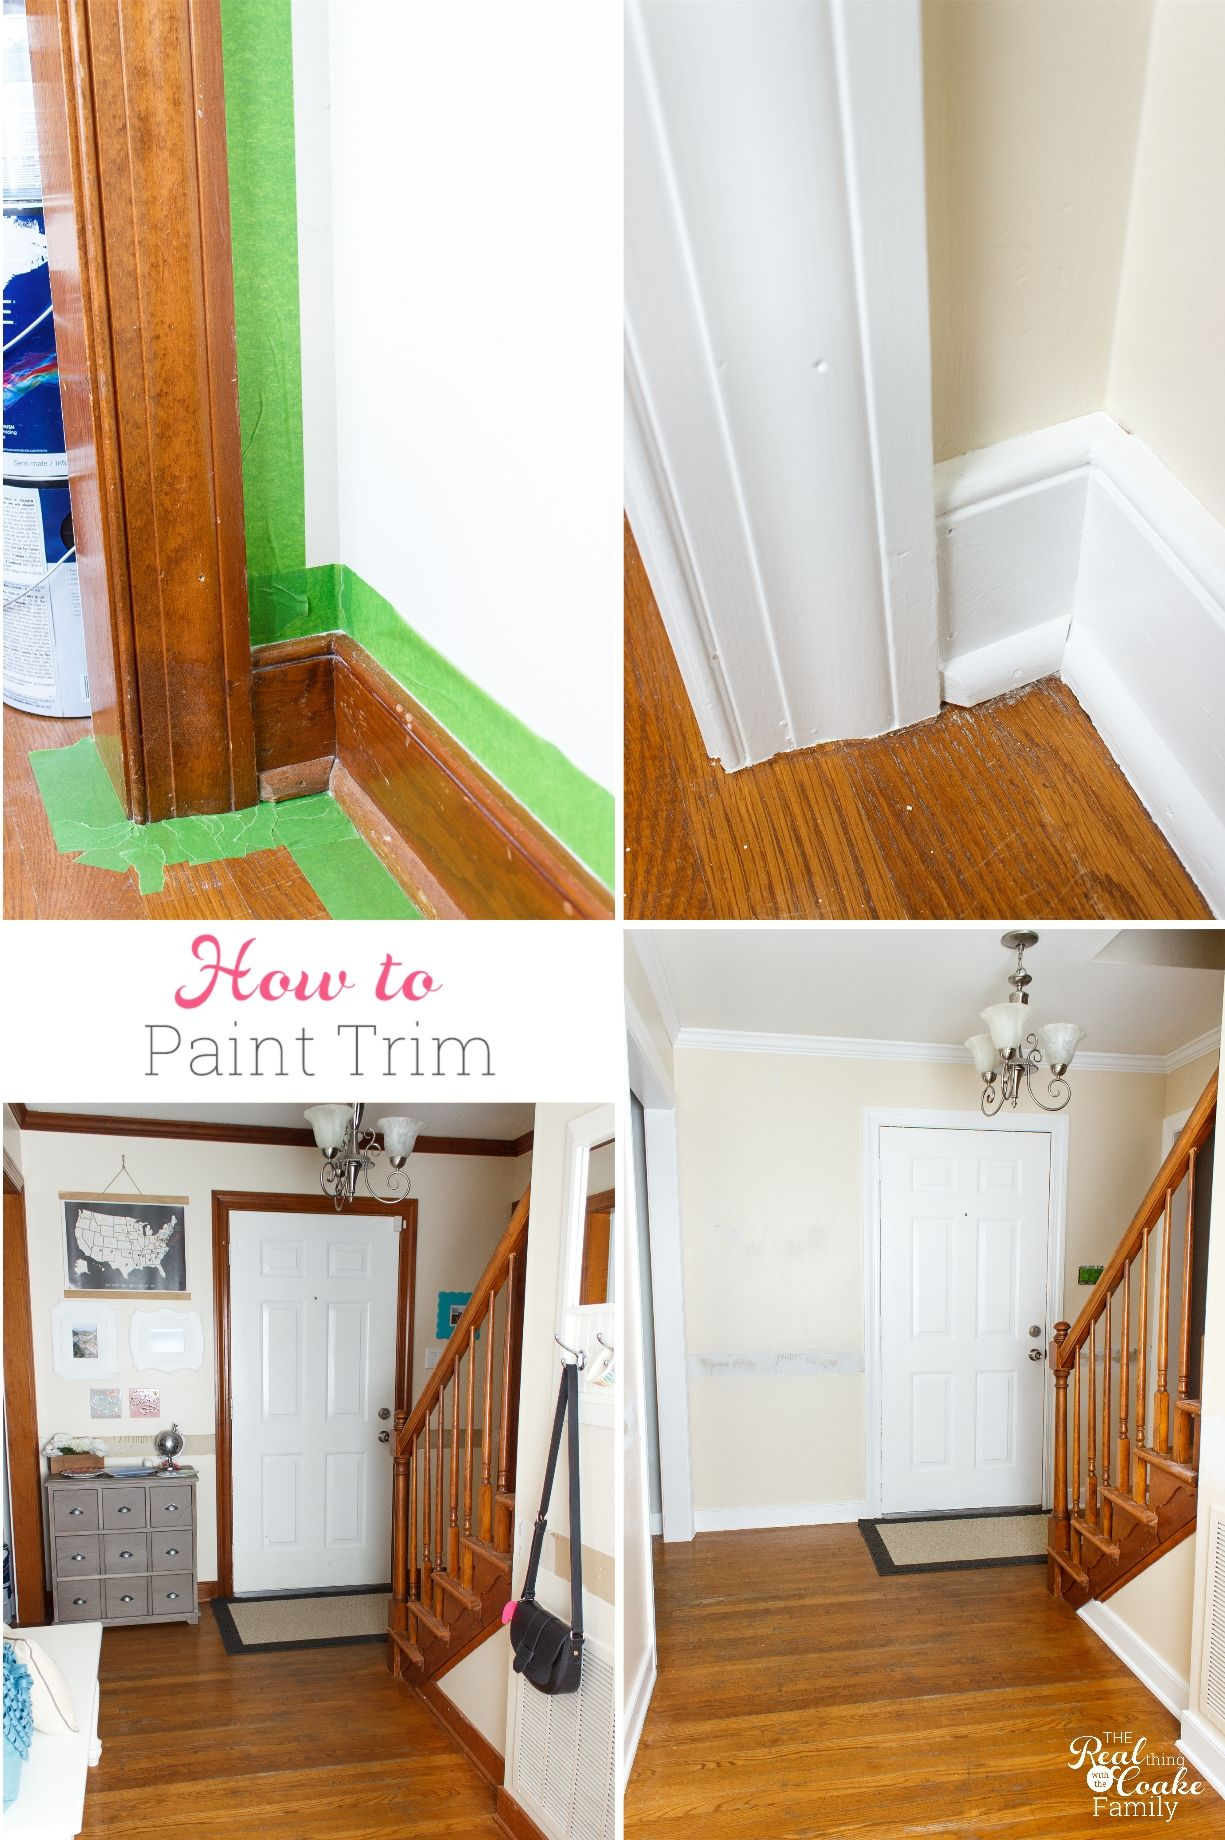 Such A Great Guide On How To Paint Trim It Goes Step By Complete This Simple Diy And Make Pretty Changes In My Home Decor